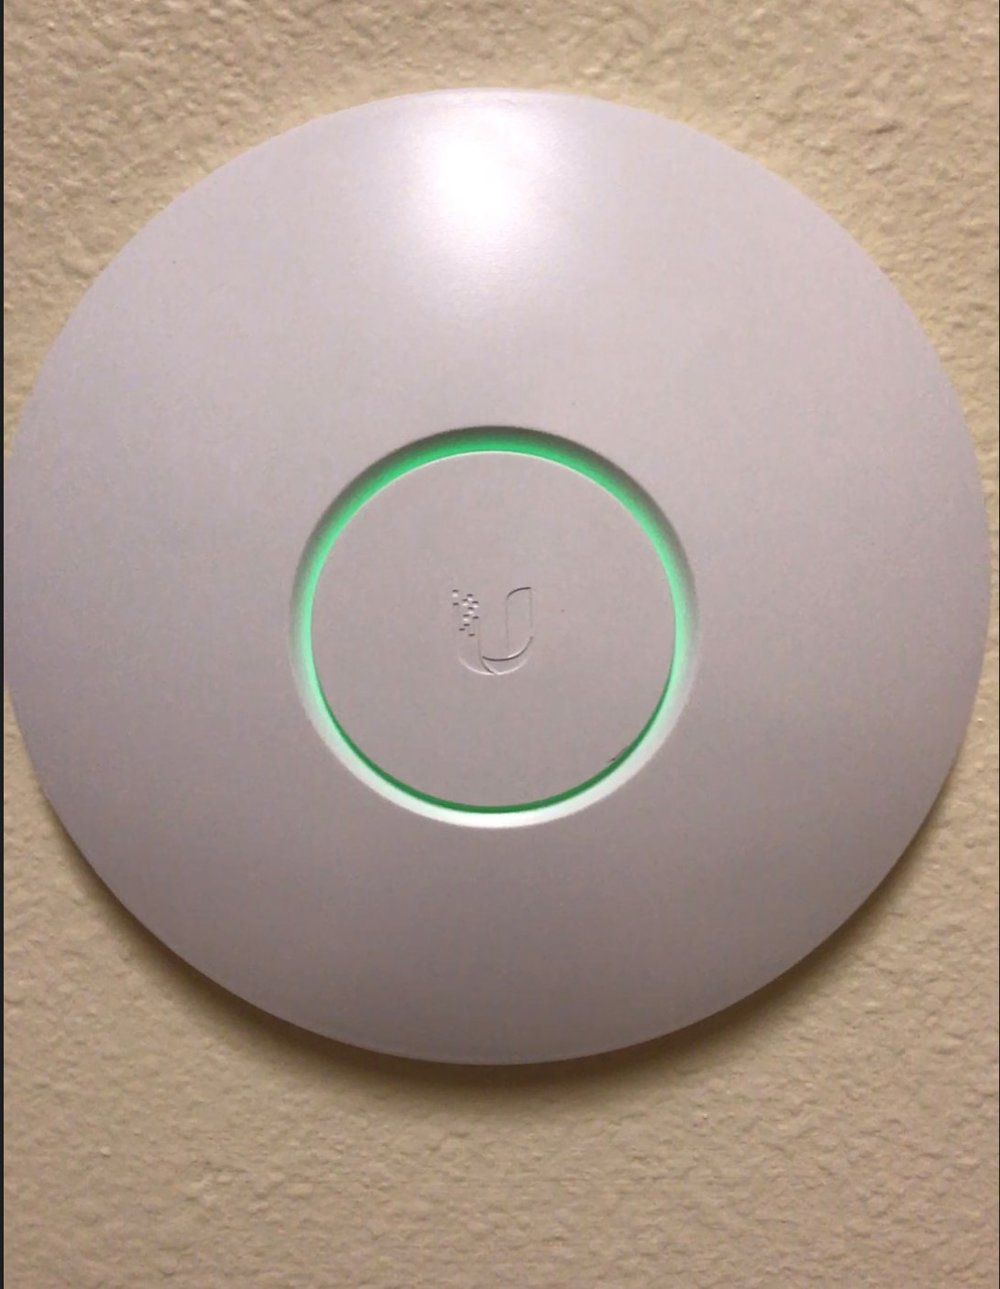 Access point in each individual unit